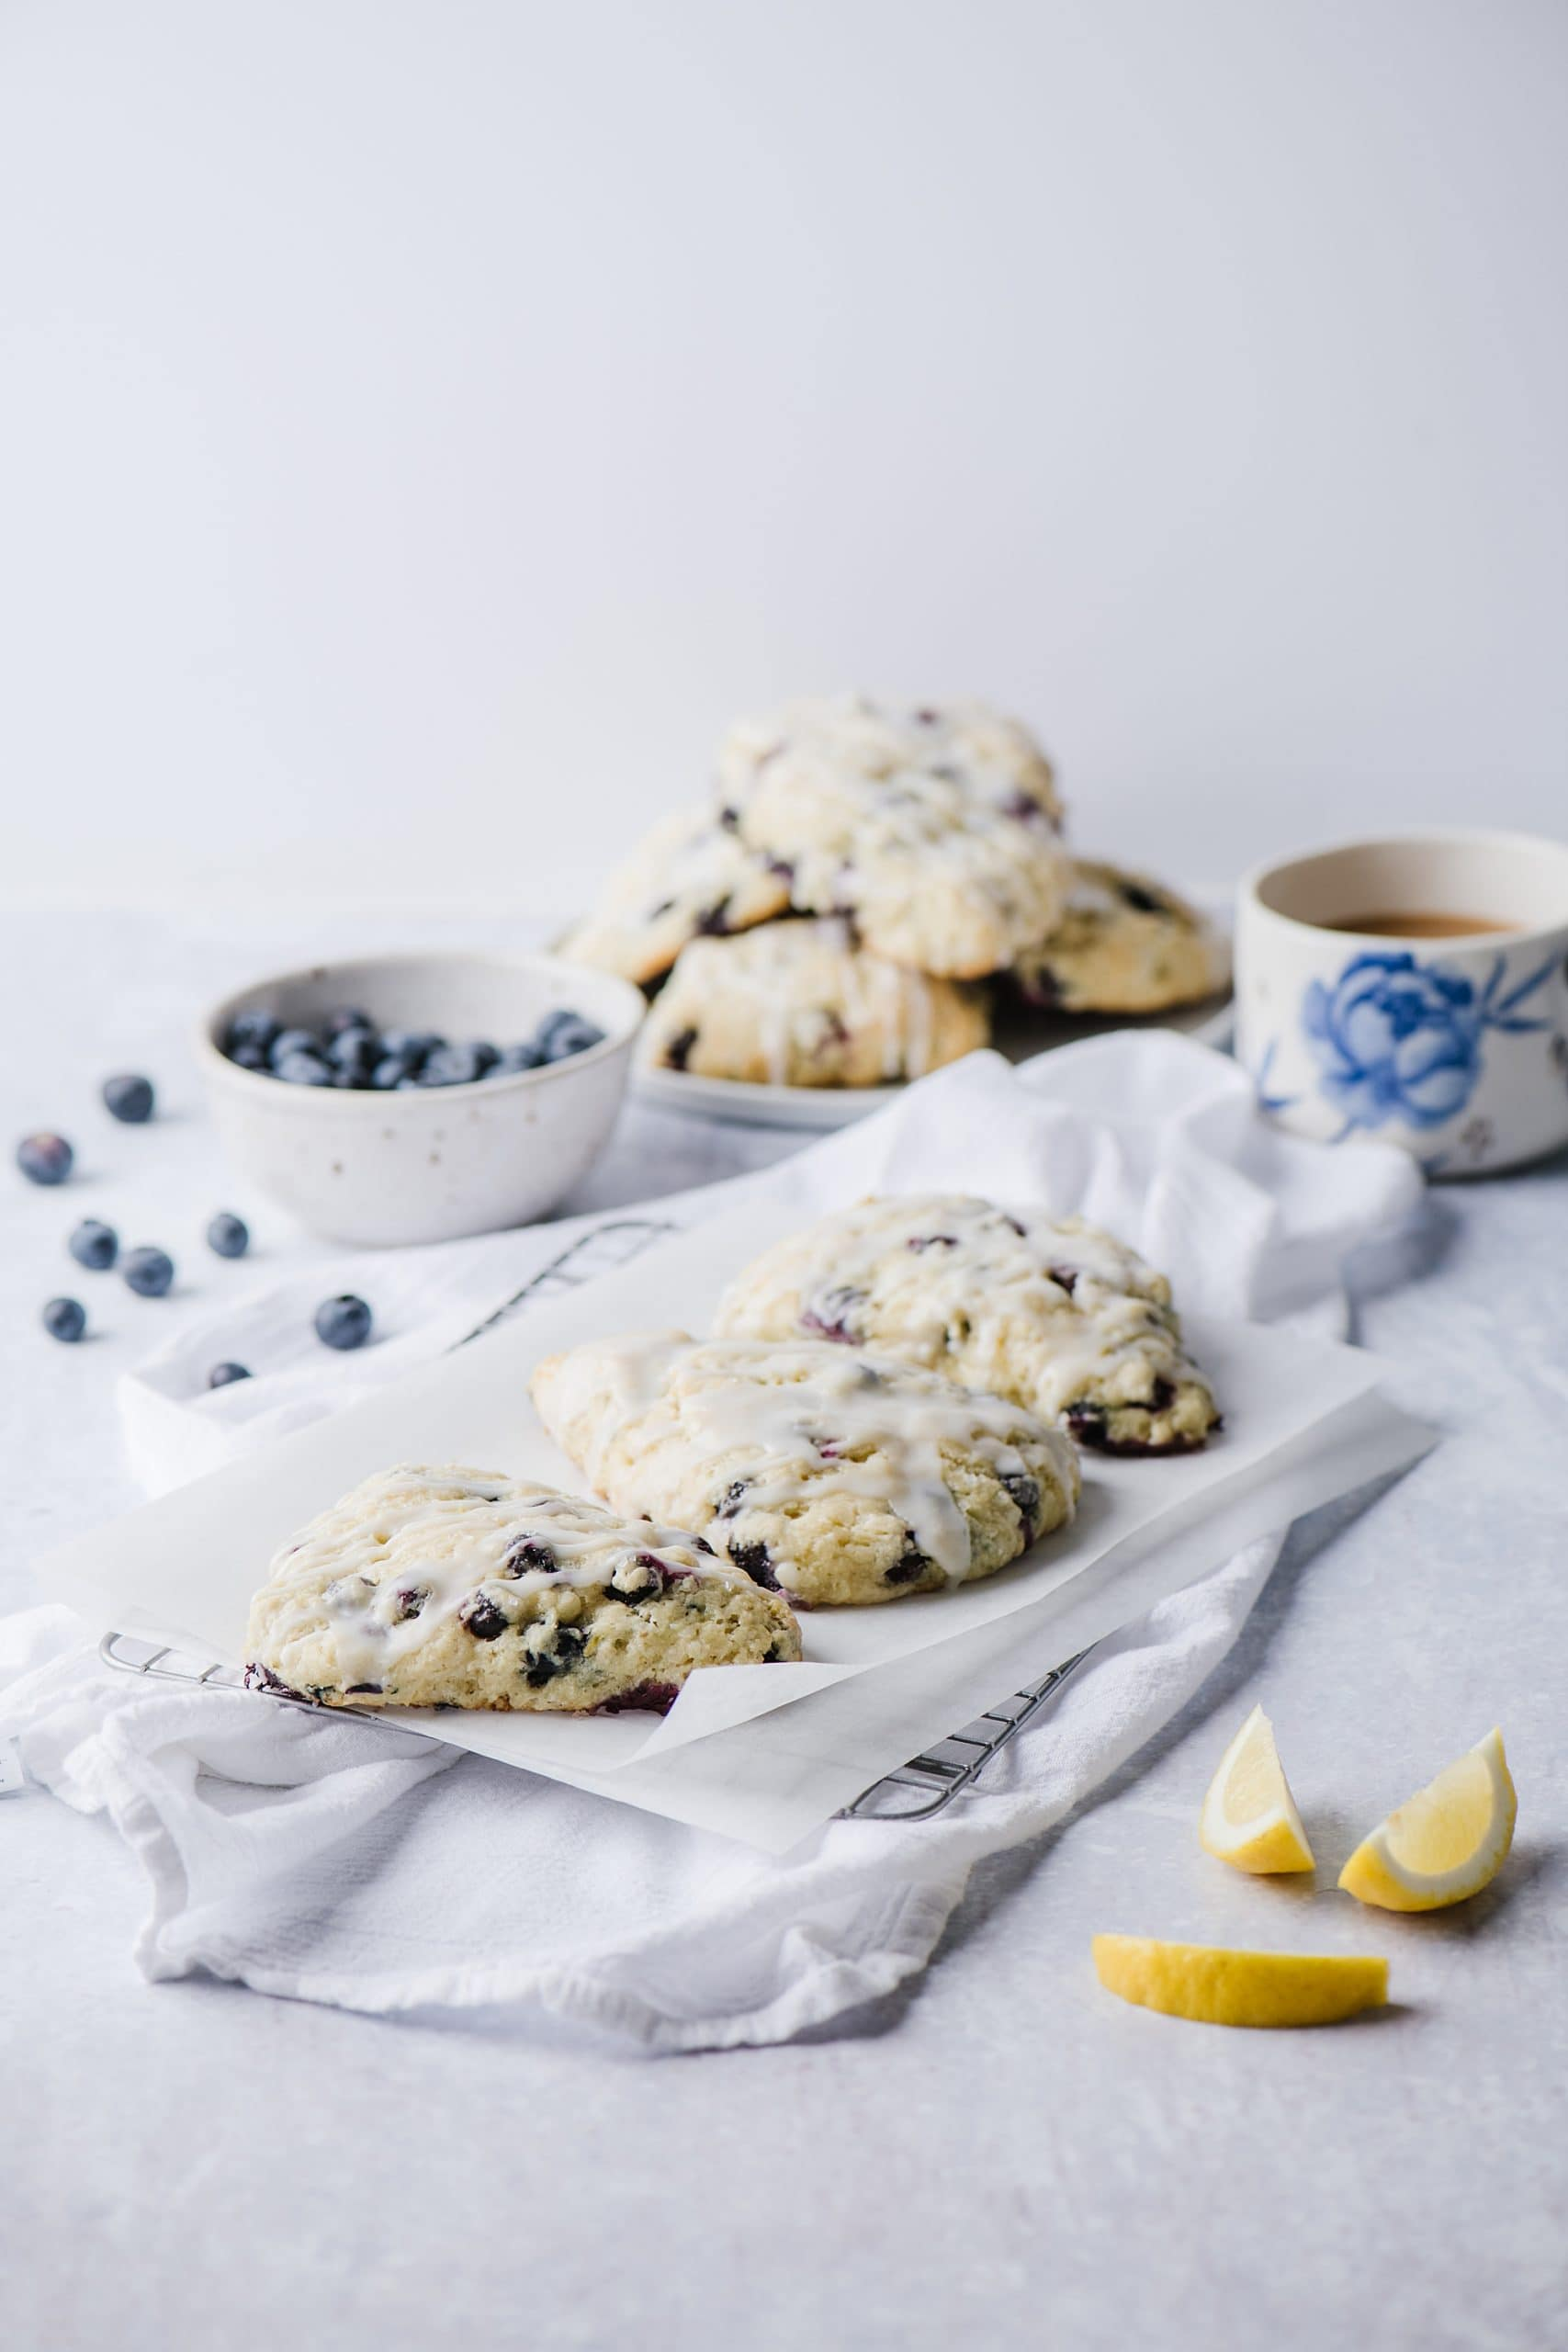 blueberry lemon scones on white plate with fresh blueberries in white bowl and mug of tea